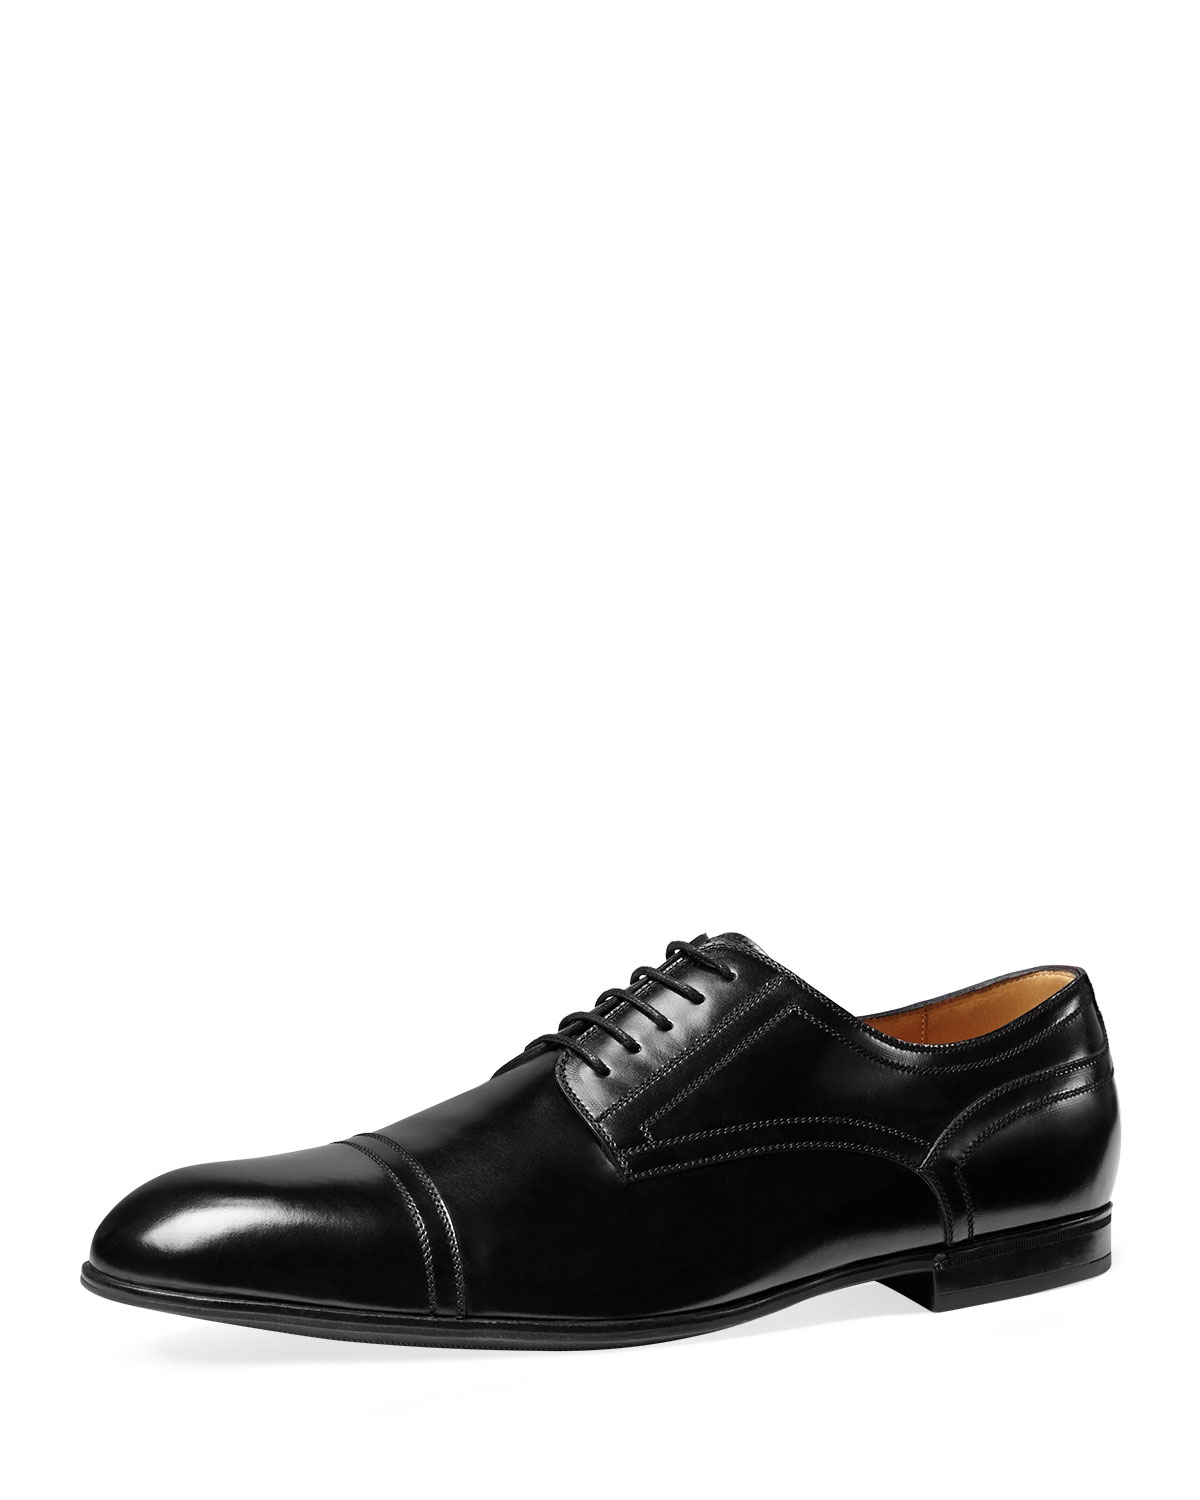 d2d5923f18b Gucci Ravello Leather Oxford Shoe